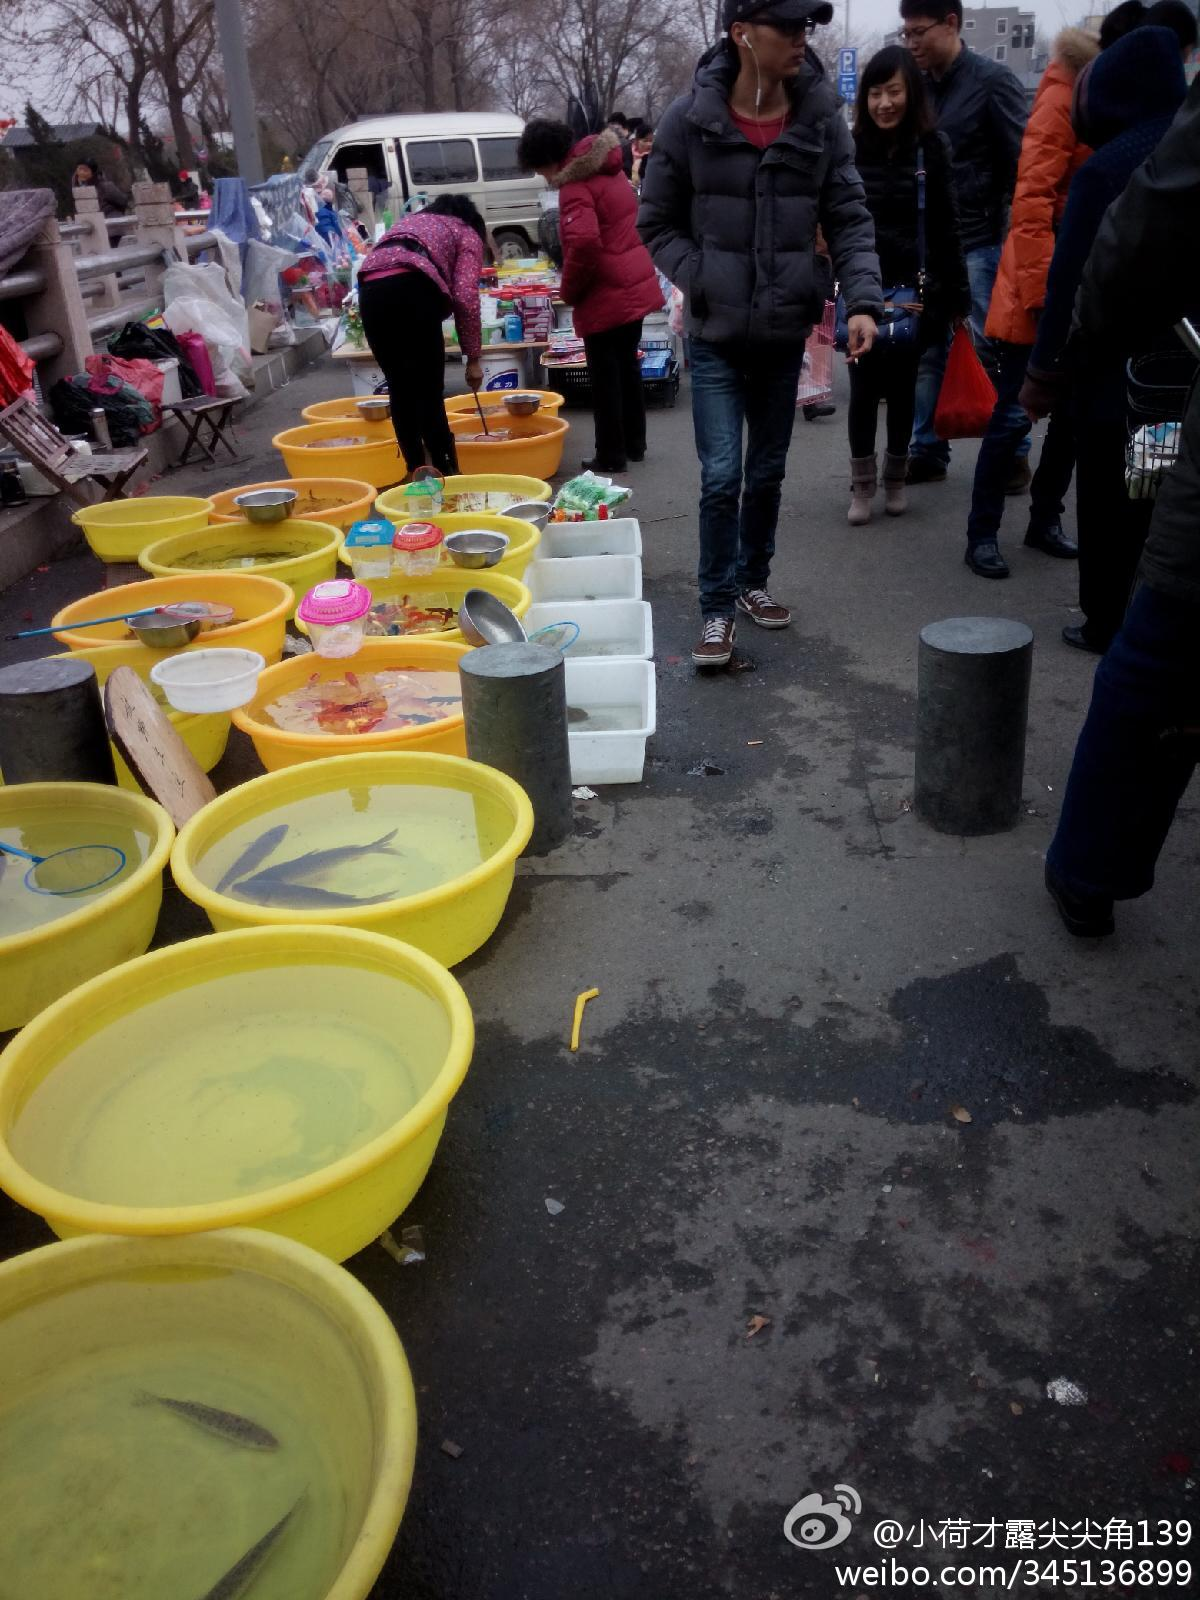 Live fish for sale in China. (Sina Weibo)